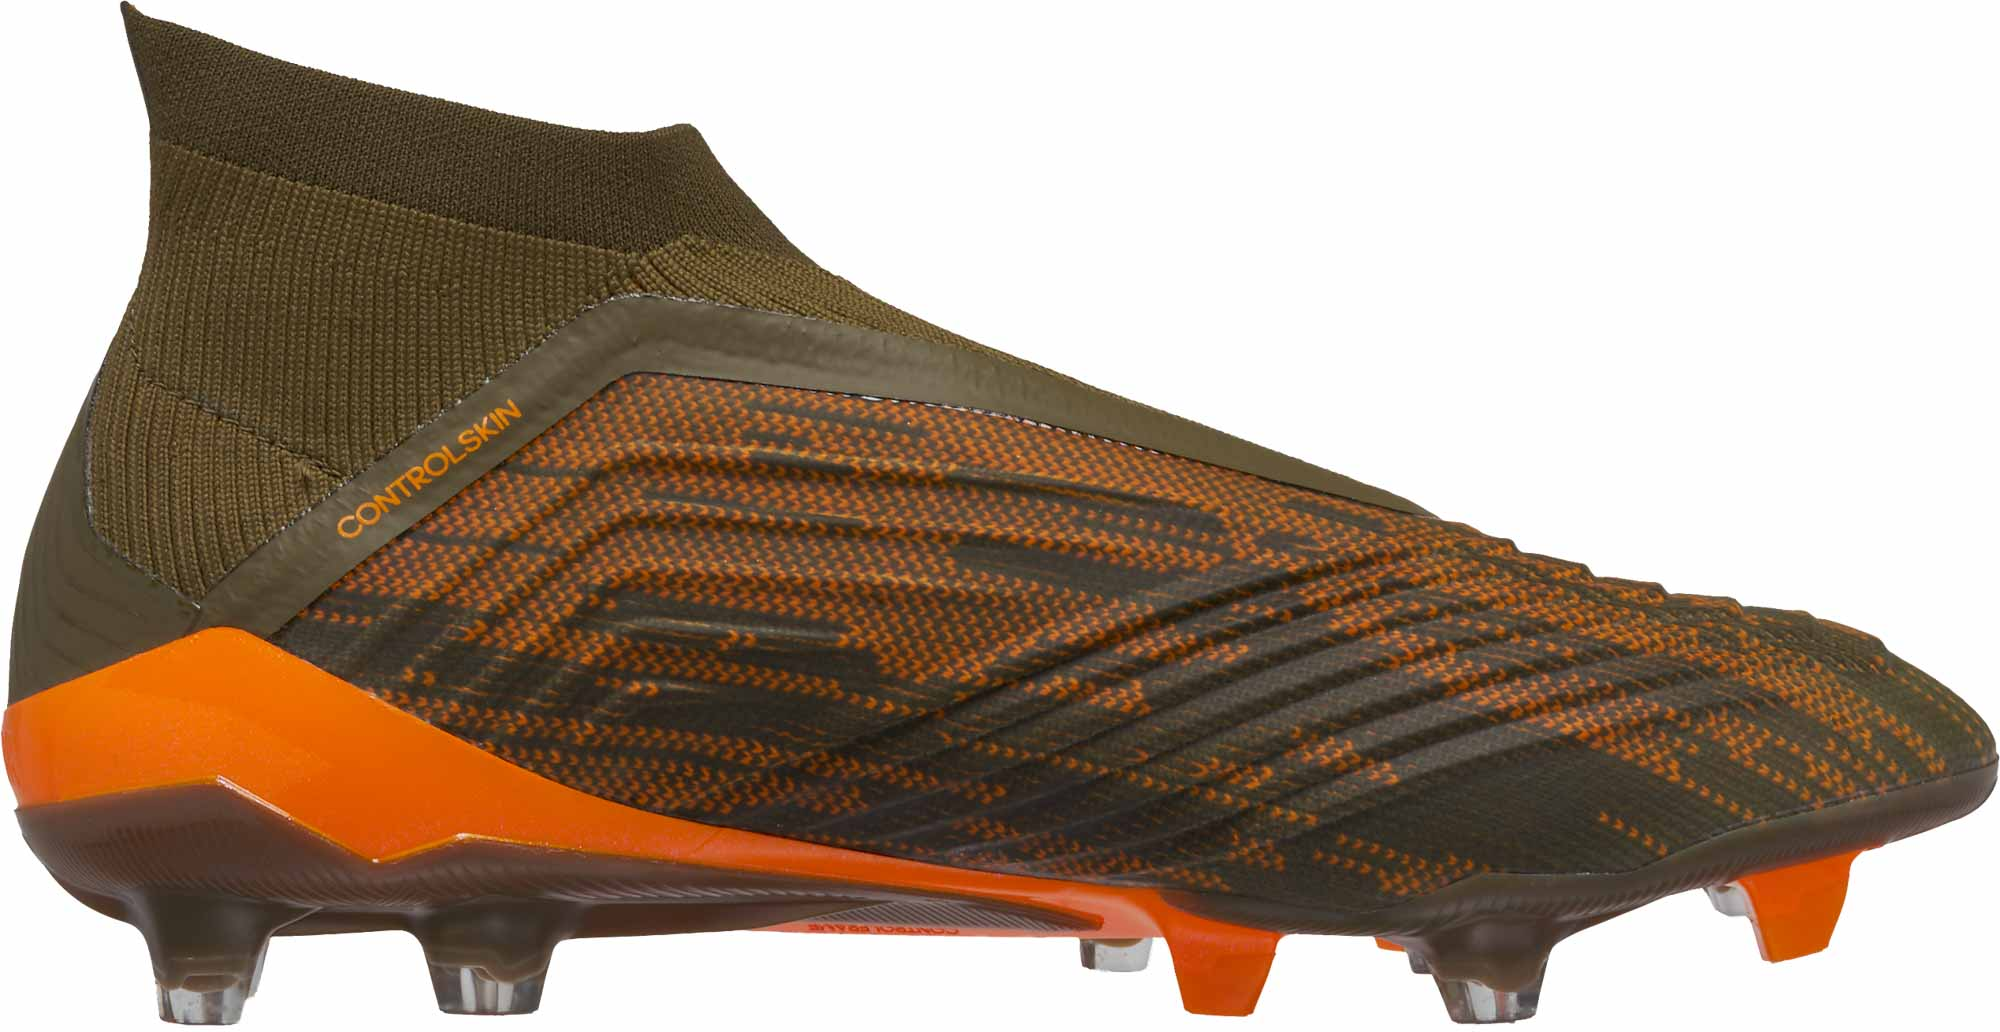 adidas Predator 18+ FG – Trace Olive/Burnt Orange